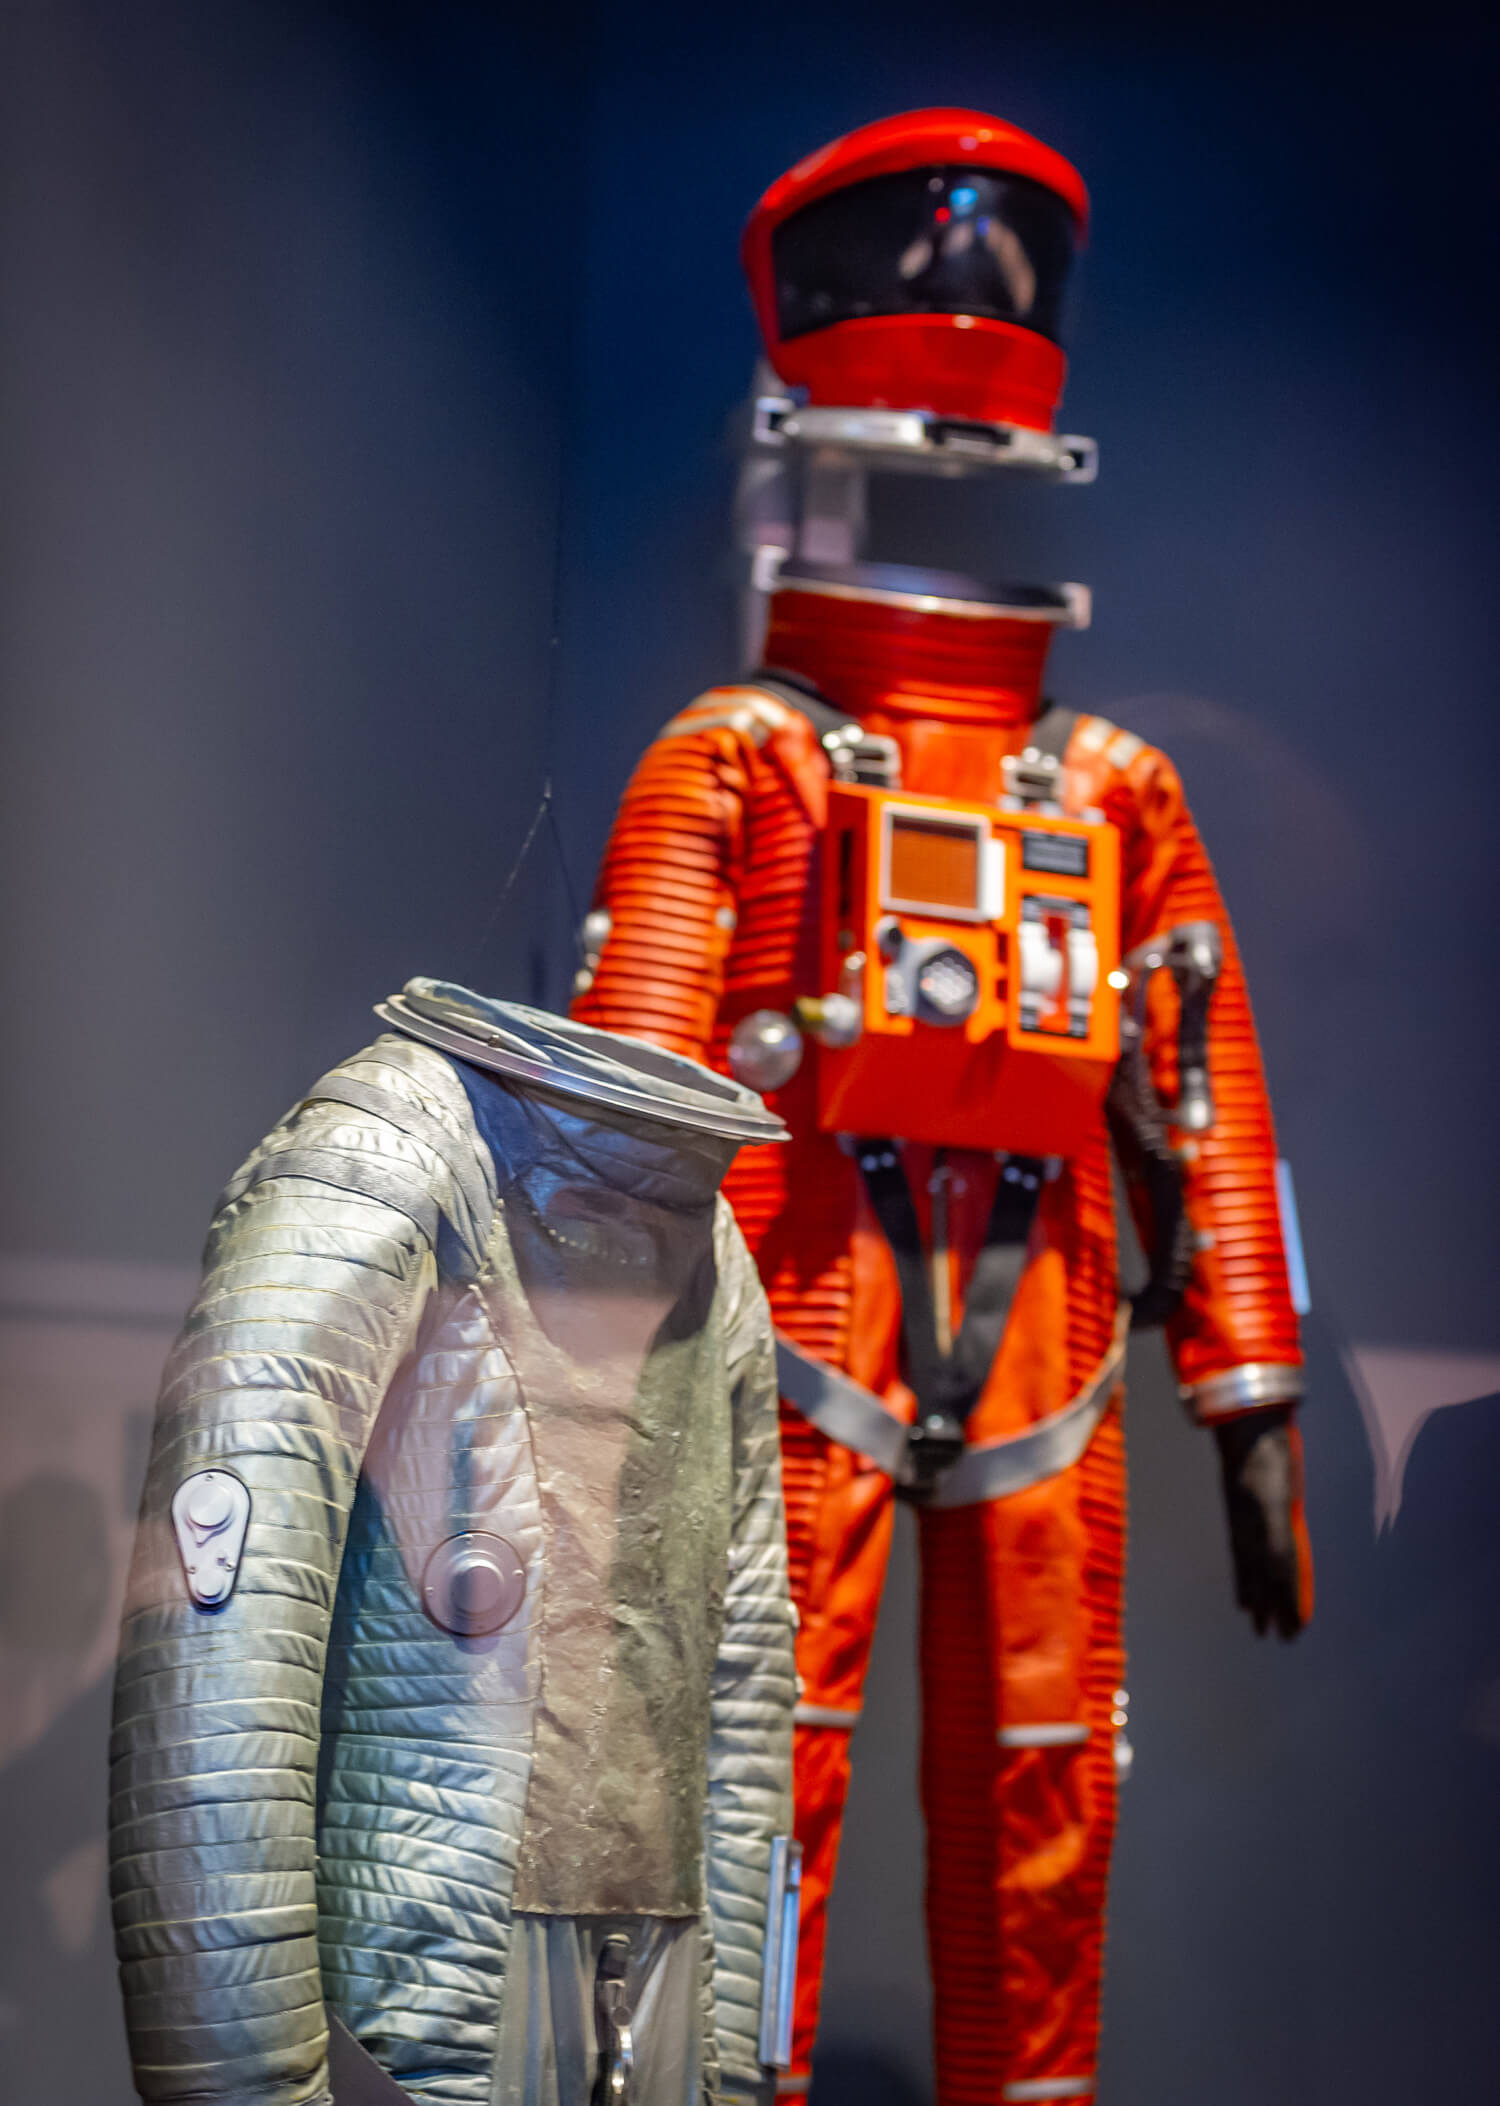 Costumes from 2001: A Space Odyssey: Clavius Moon Base spacesuit (silver) (designed by Harry Lange) and Discovery space suit (red/orange) (designed by Harry Lange) | Space Odyssey exhibition | Stanley Kubrick | STIRworld